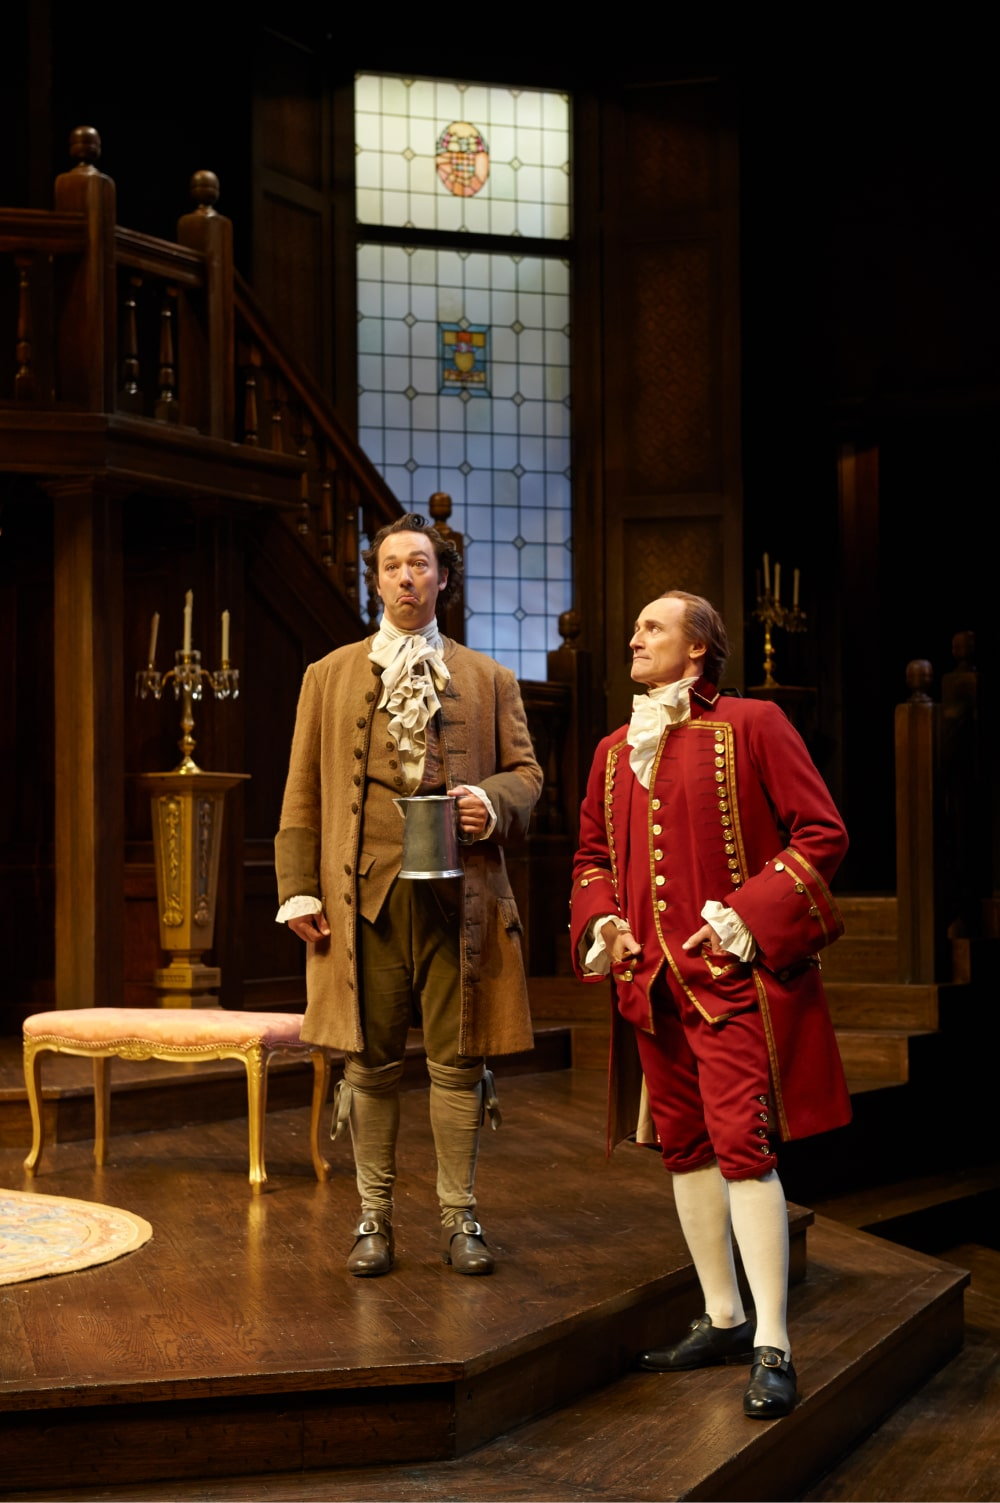 Red-suited man stands on step with perplexed man servant.